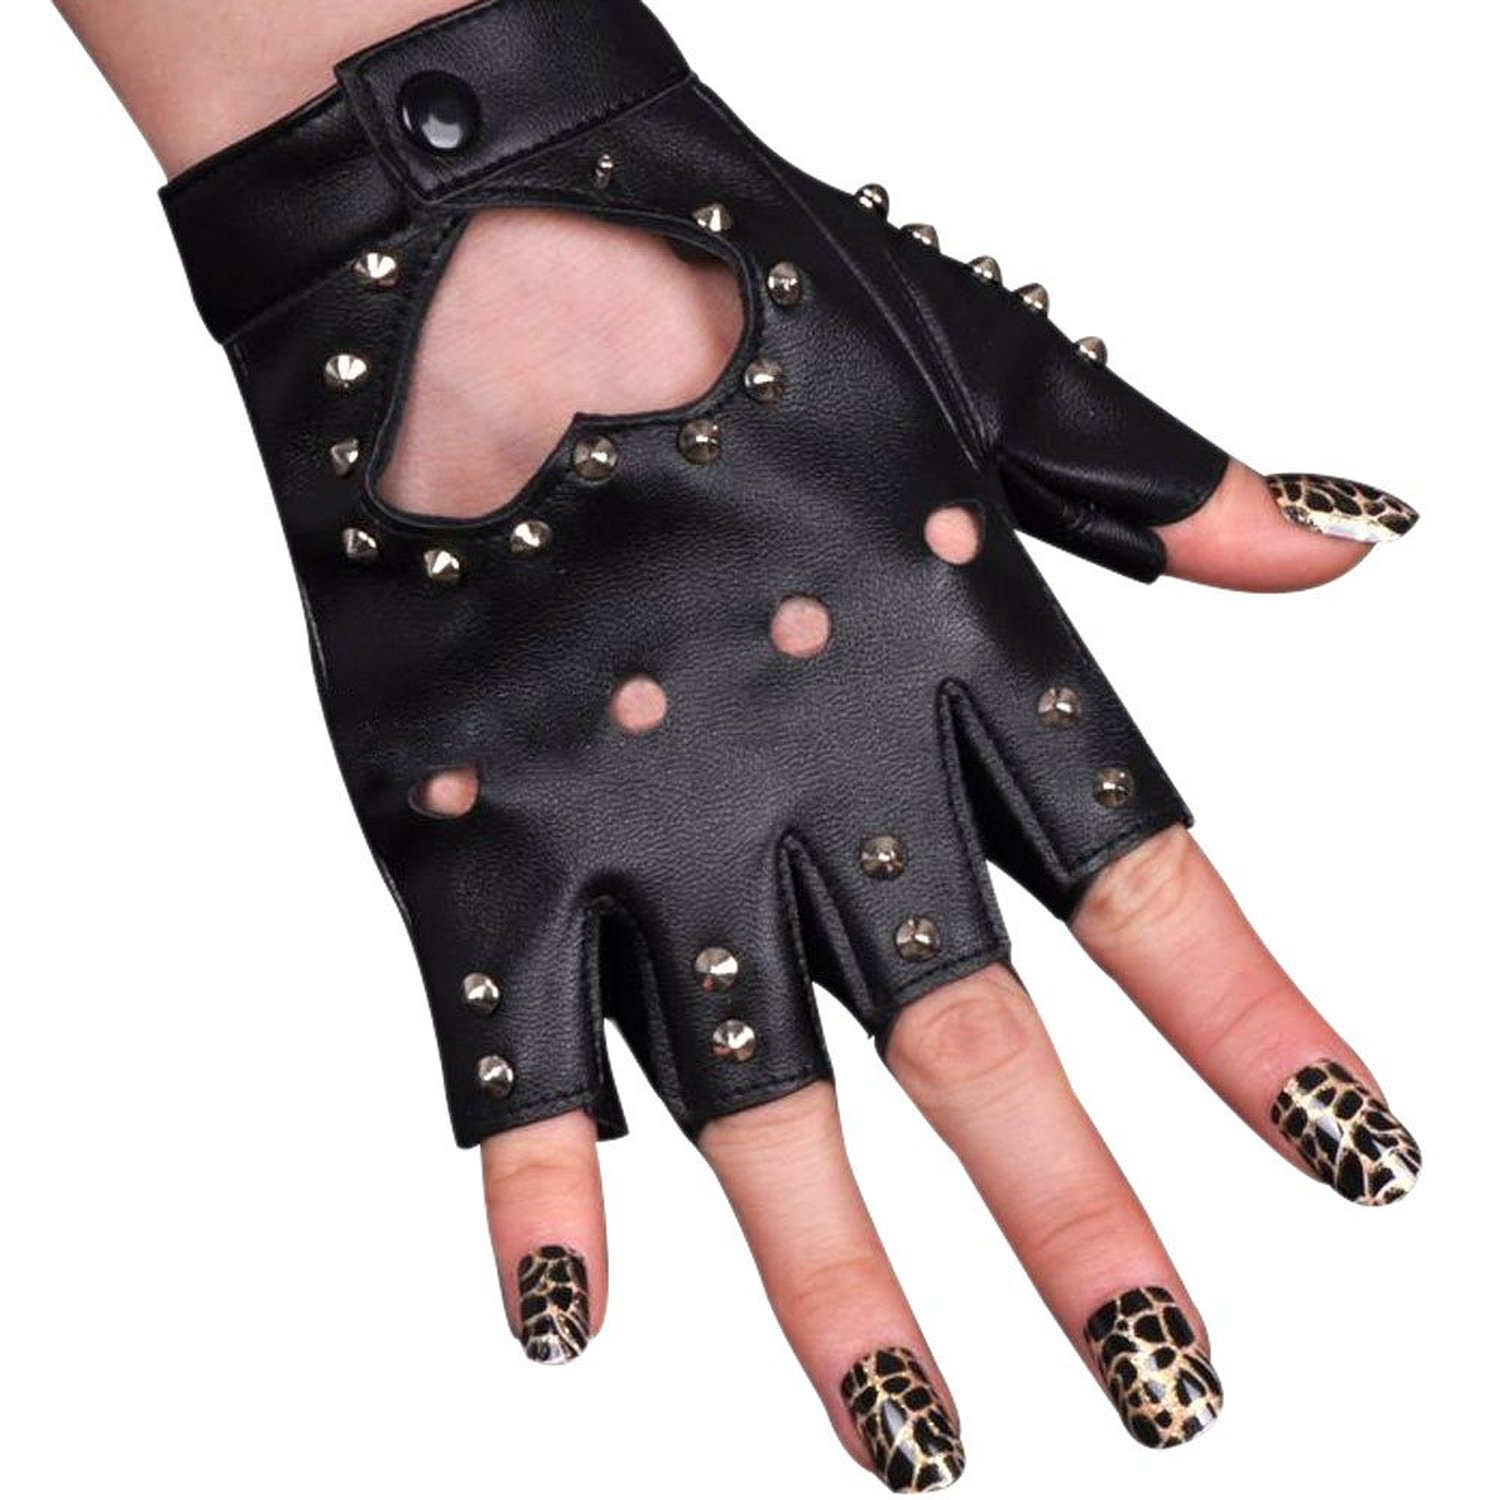 Motorcycle leather gloves amazon - Women Pu Leather Motorcycle Bike Car Fingerless Performances Glove Black1 At Amazon Women S Clothing Store